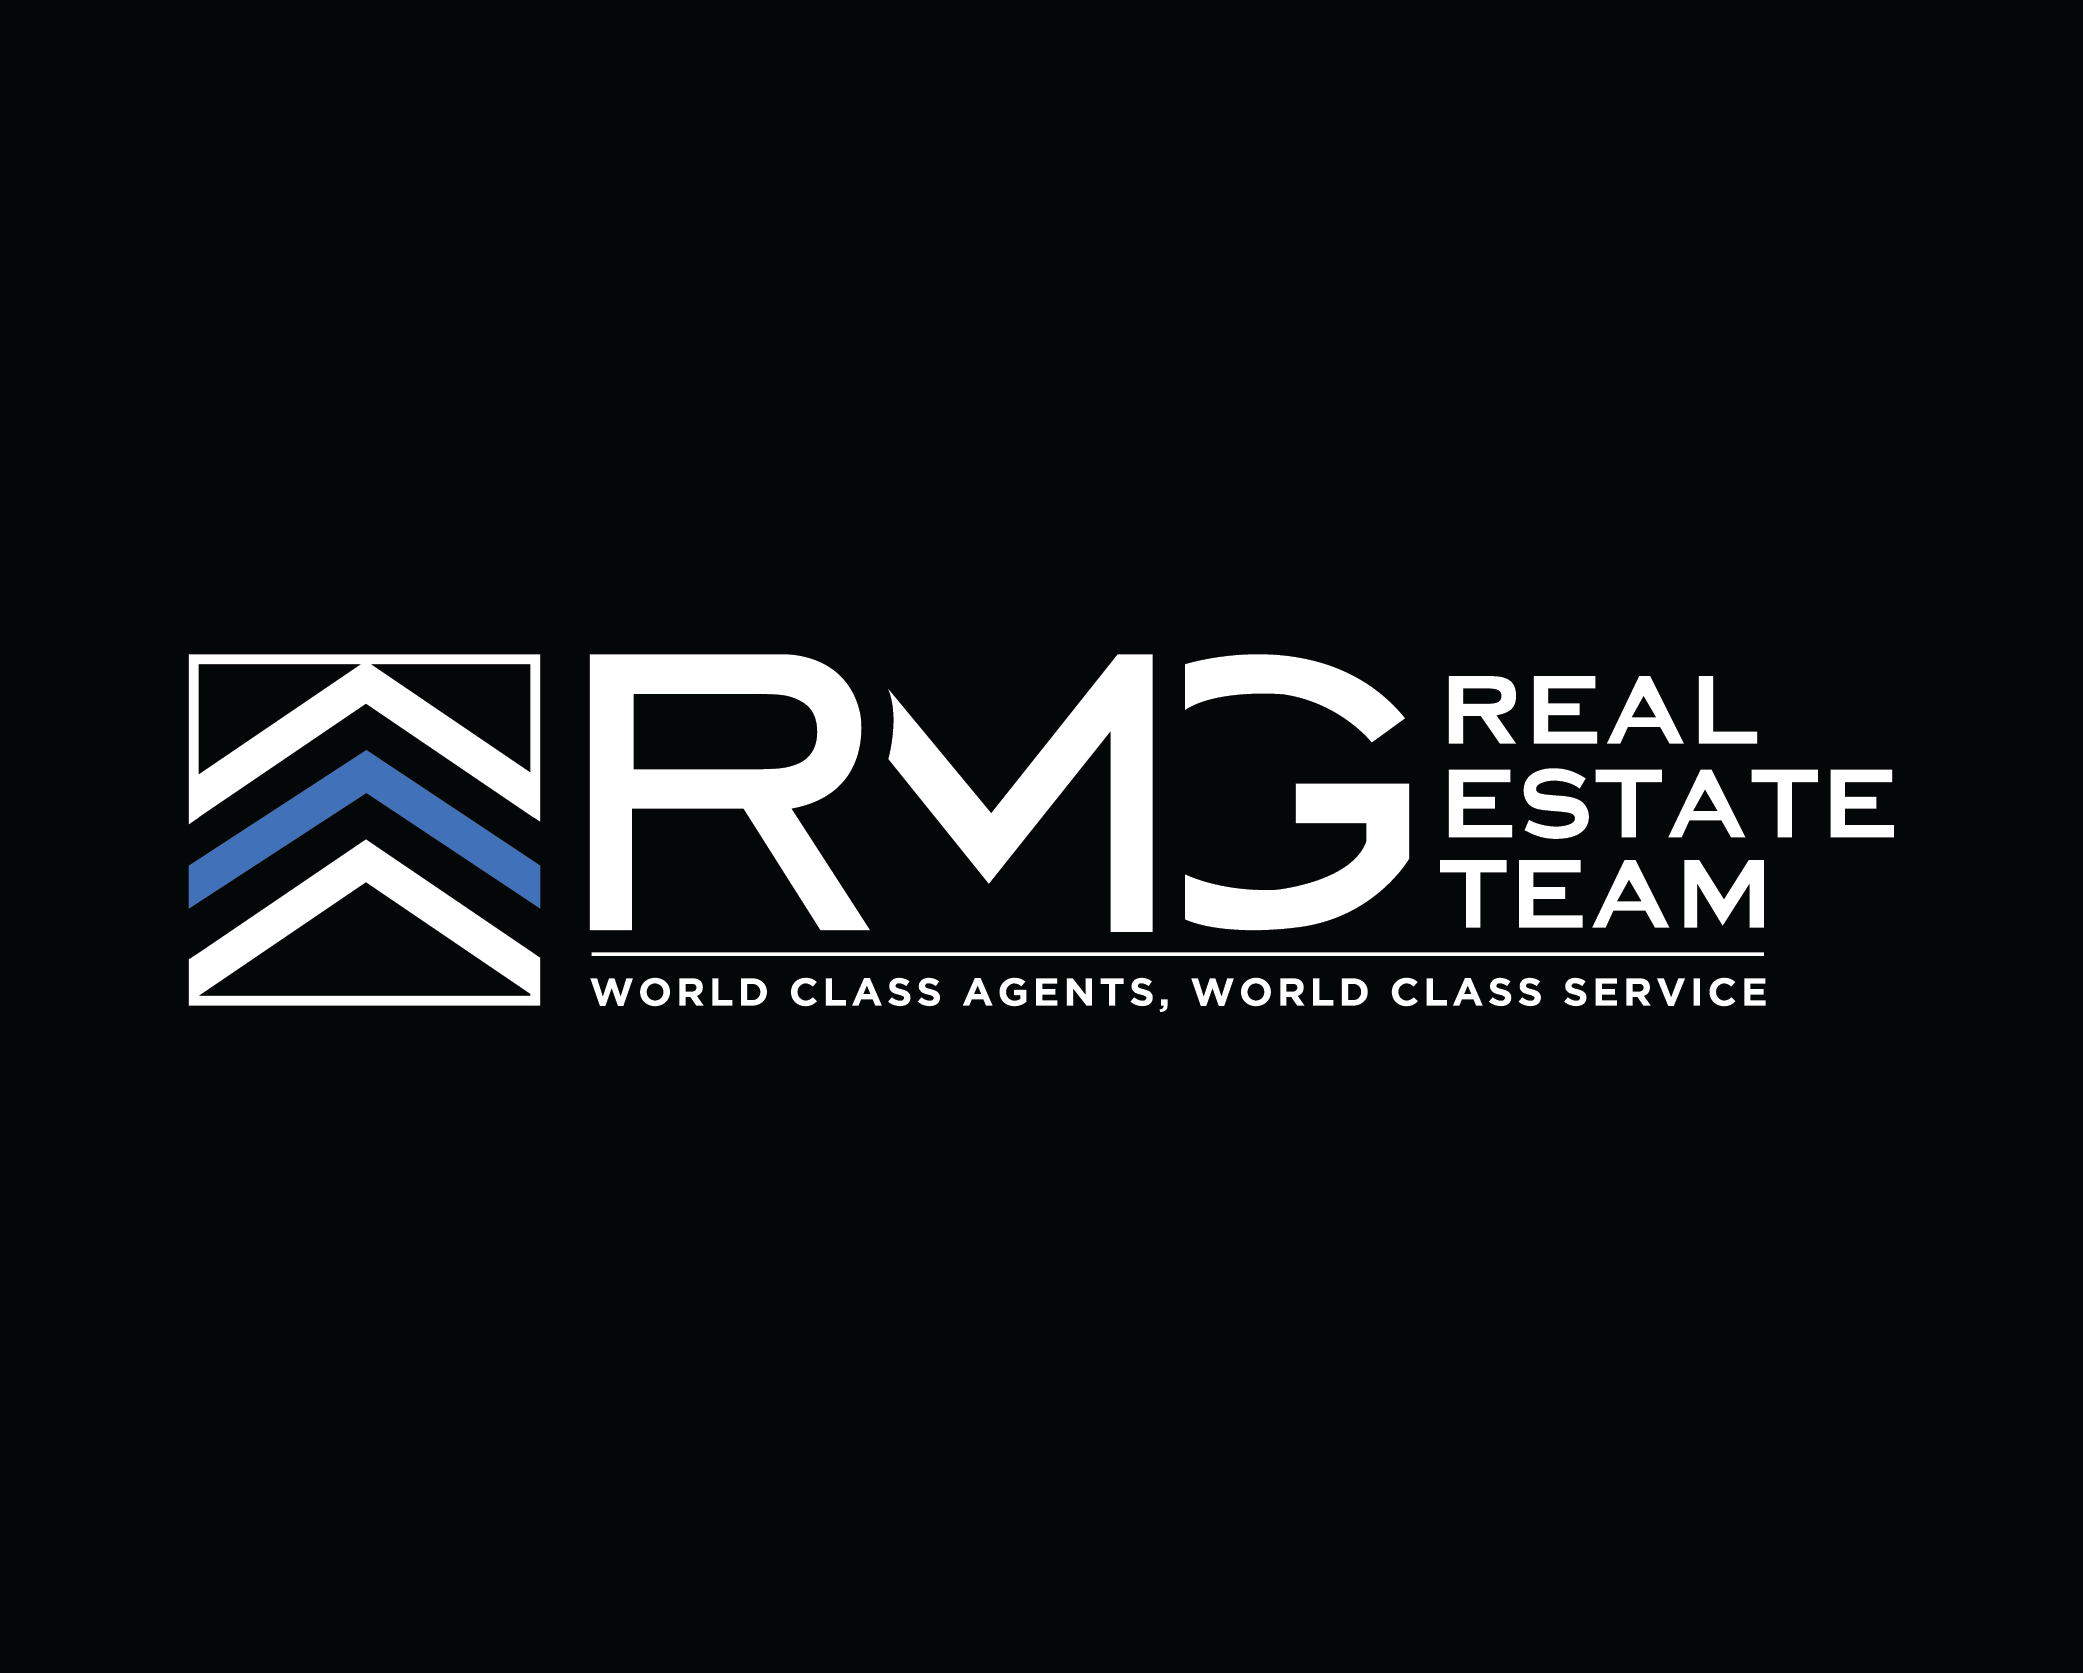 Ray Meyer Group powered by eXp Realty logo